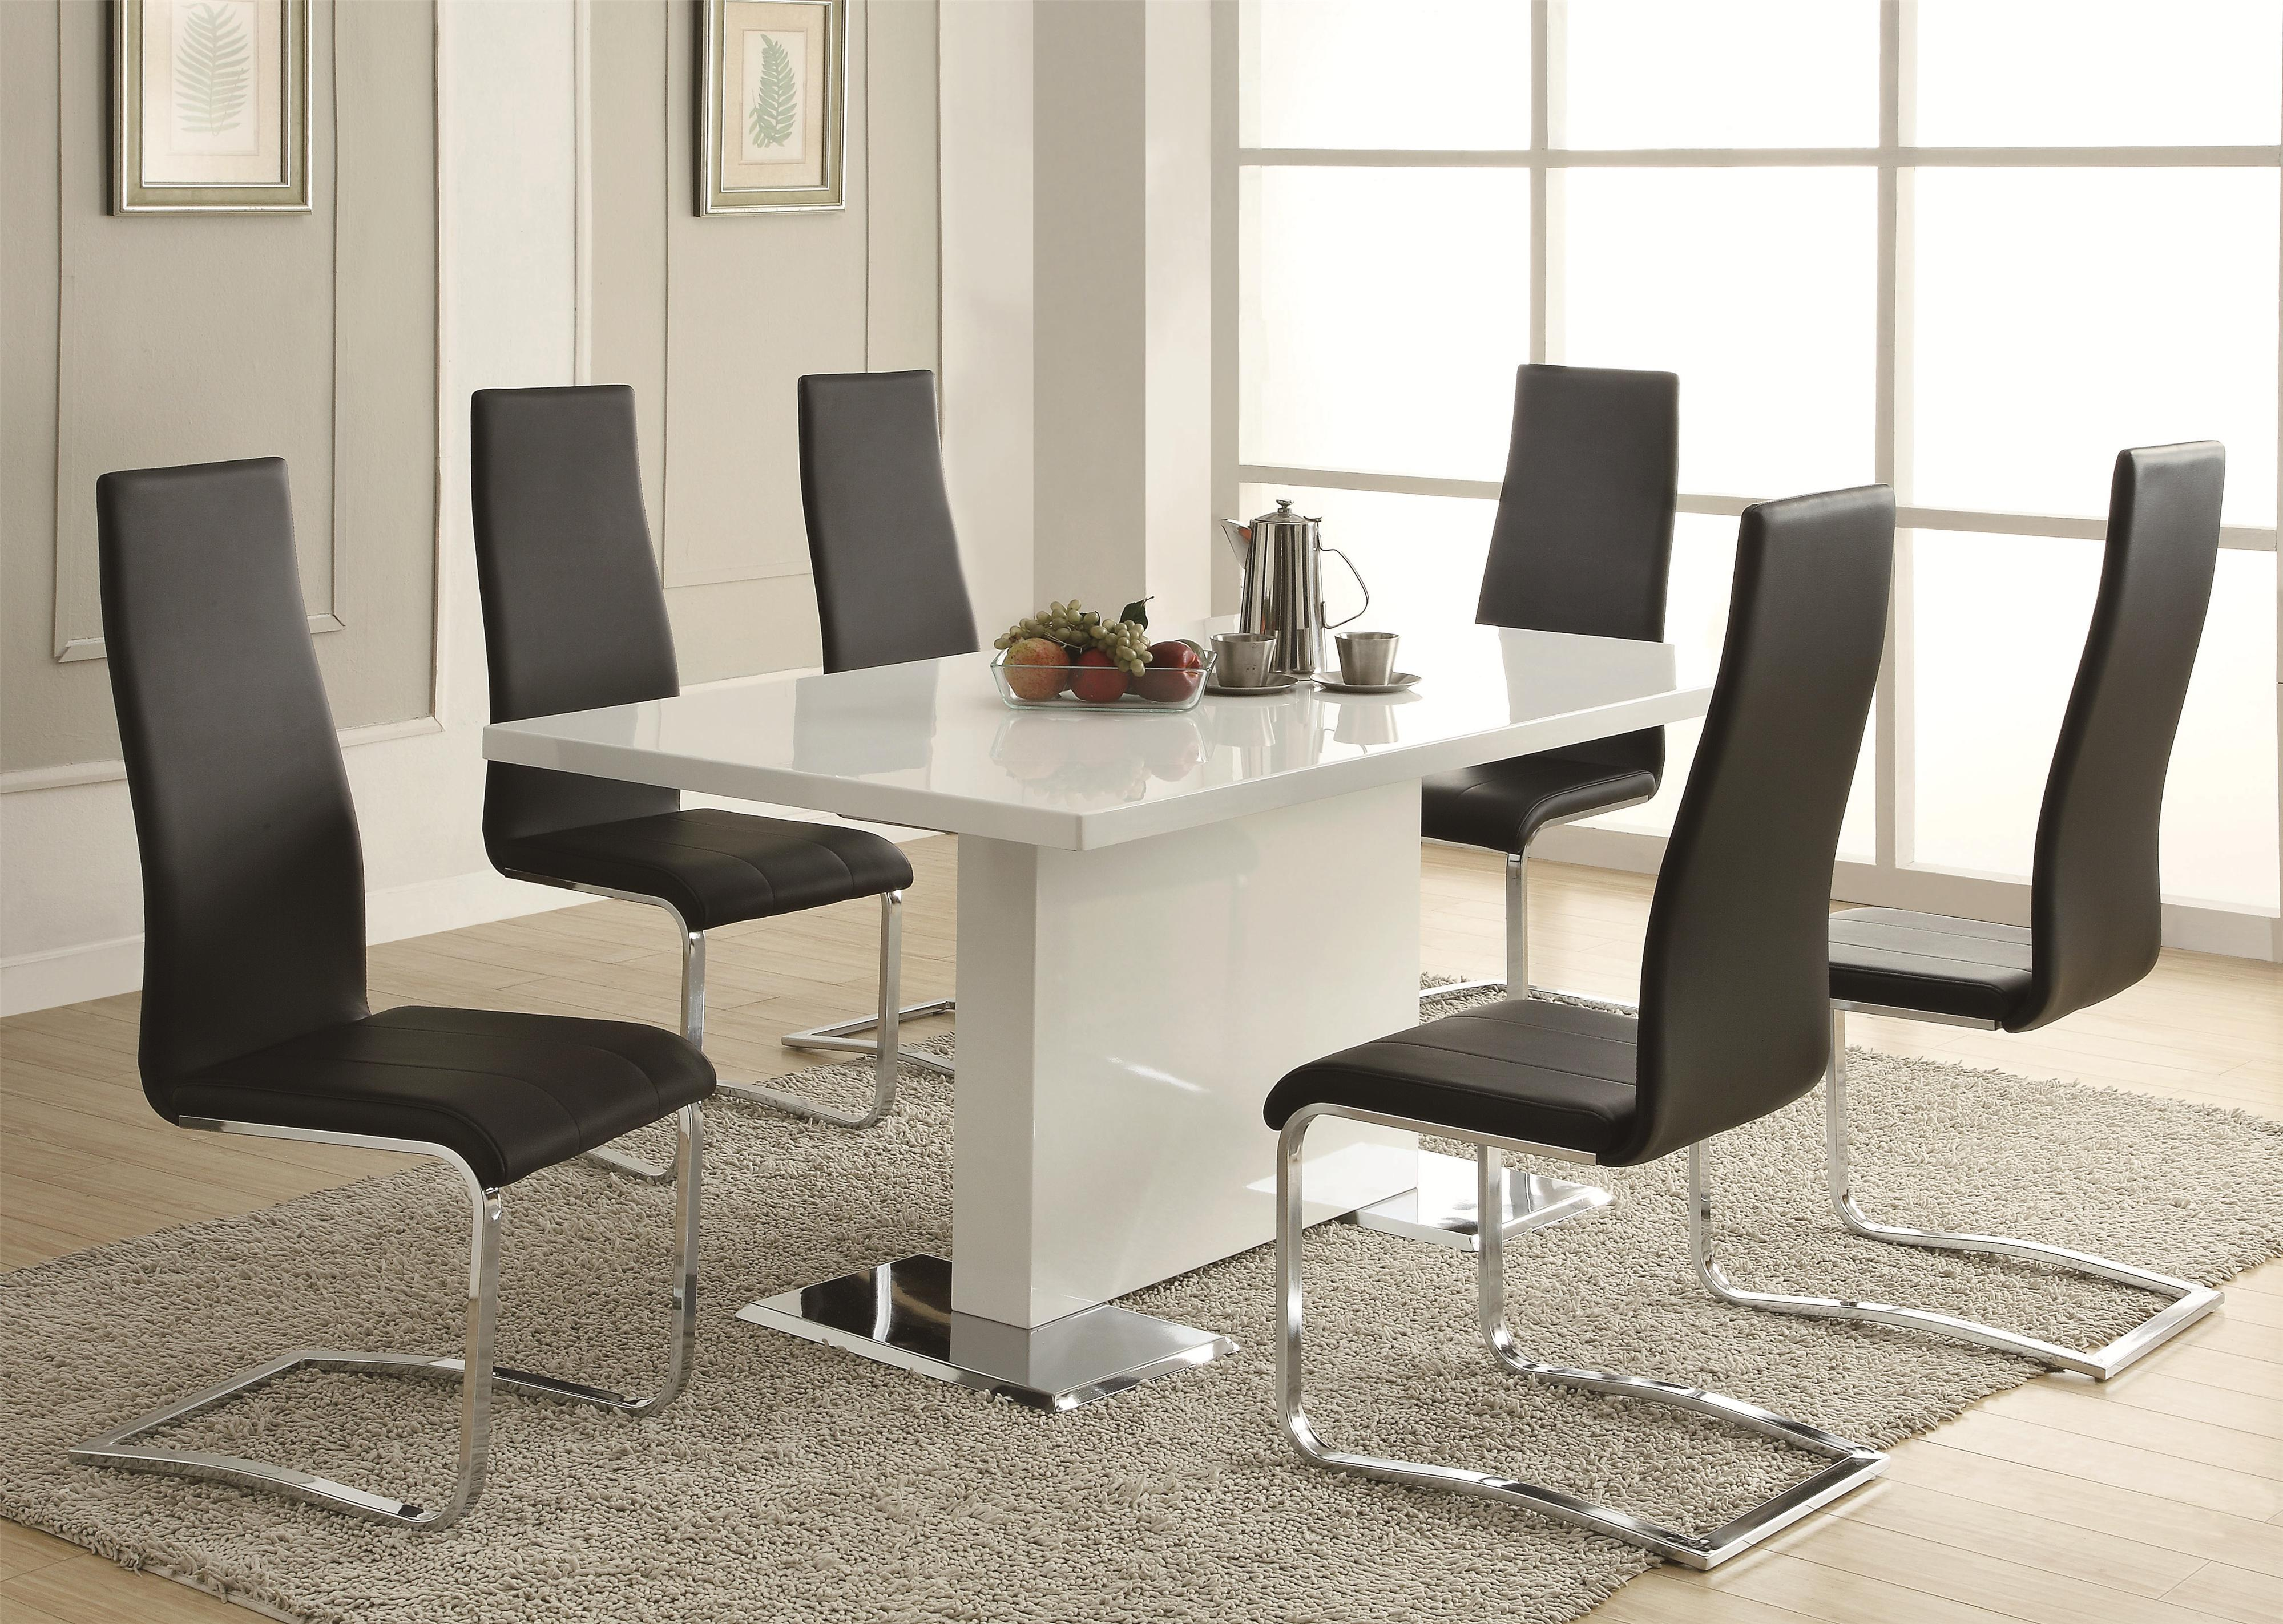 Modern dining tables with the modern dining tables JVUVDTY ensure a happy dining experience